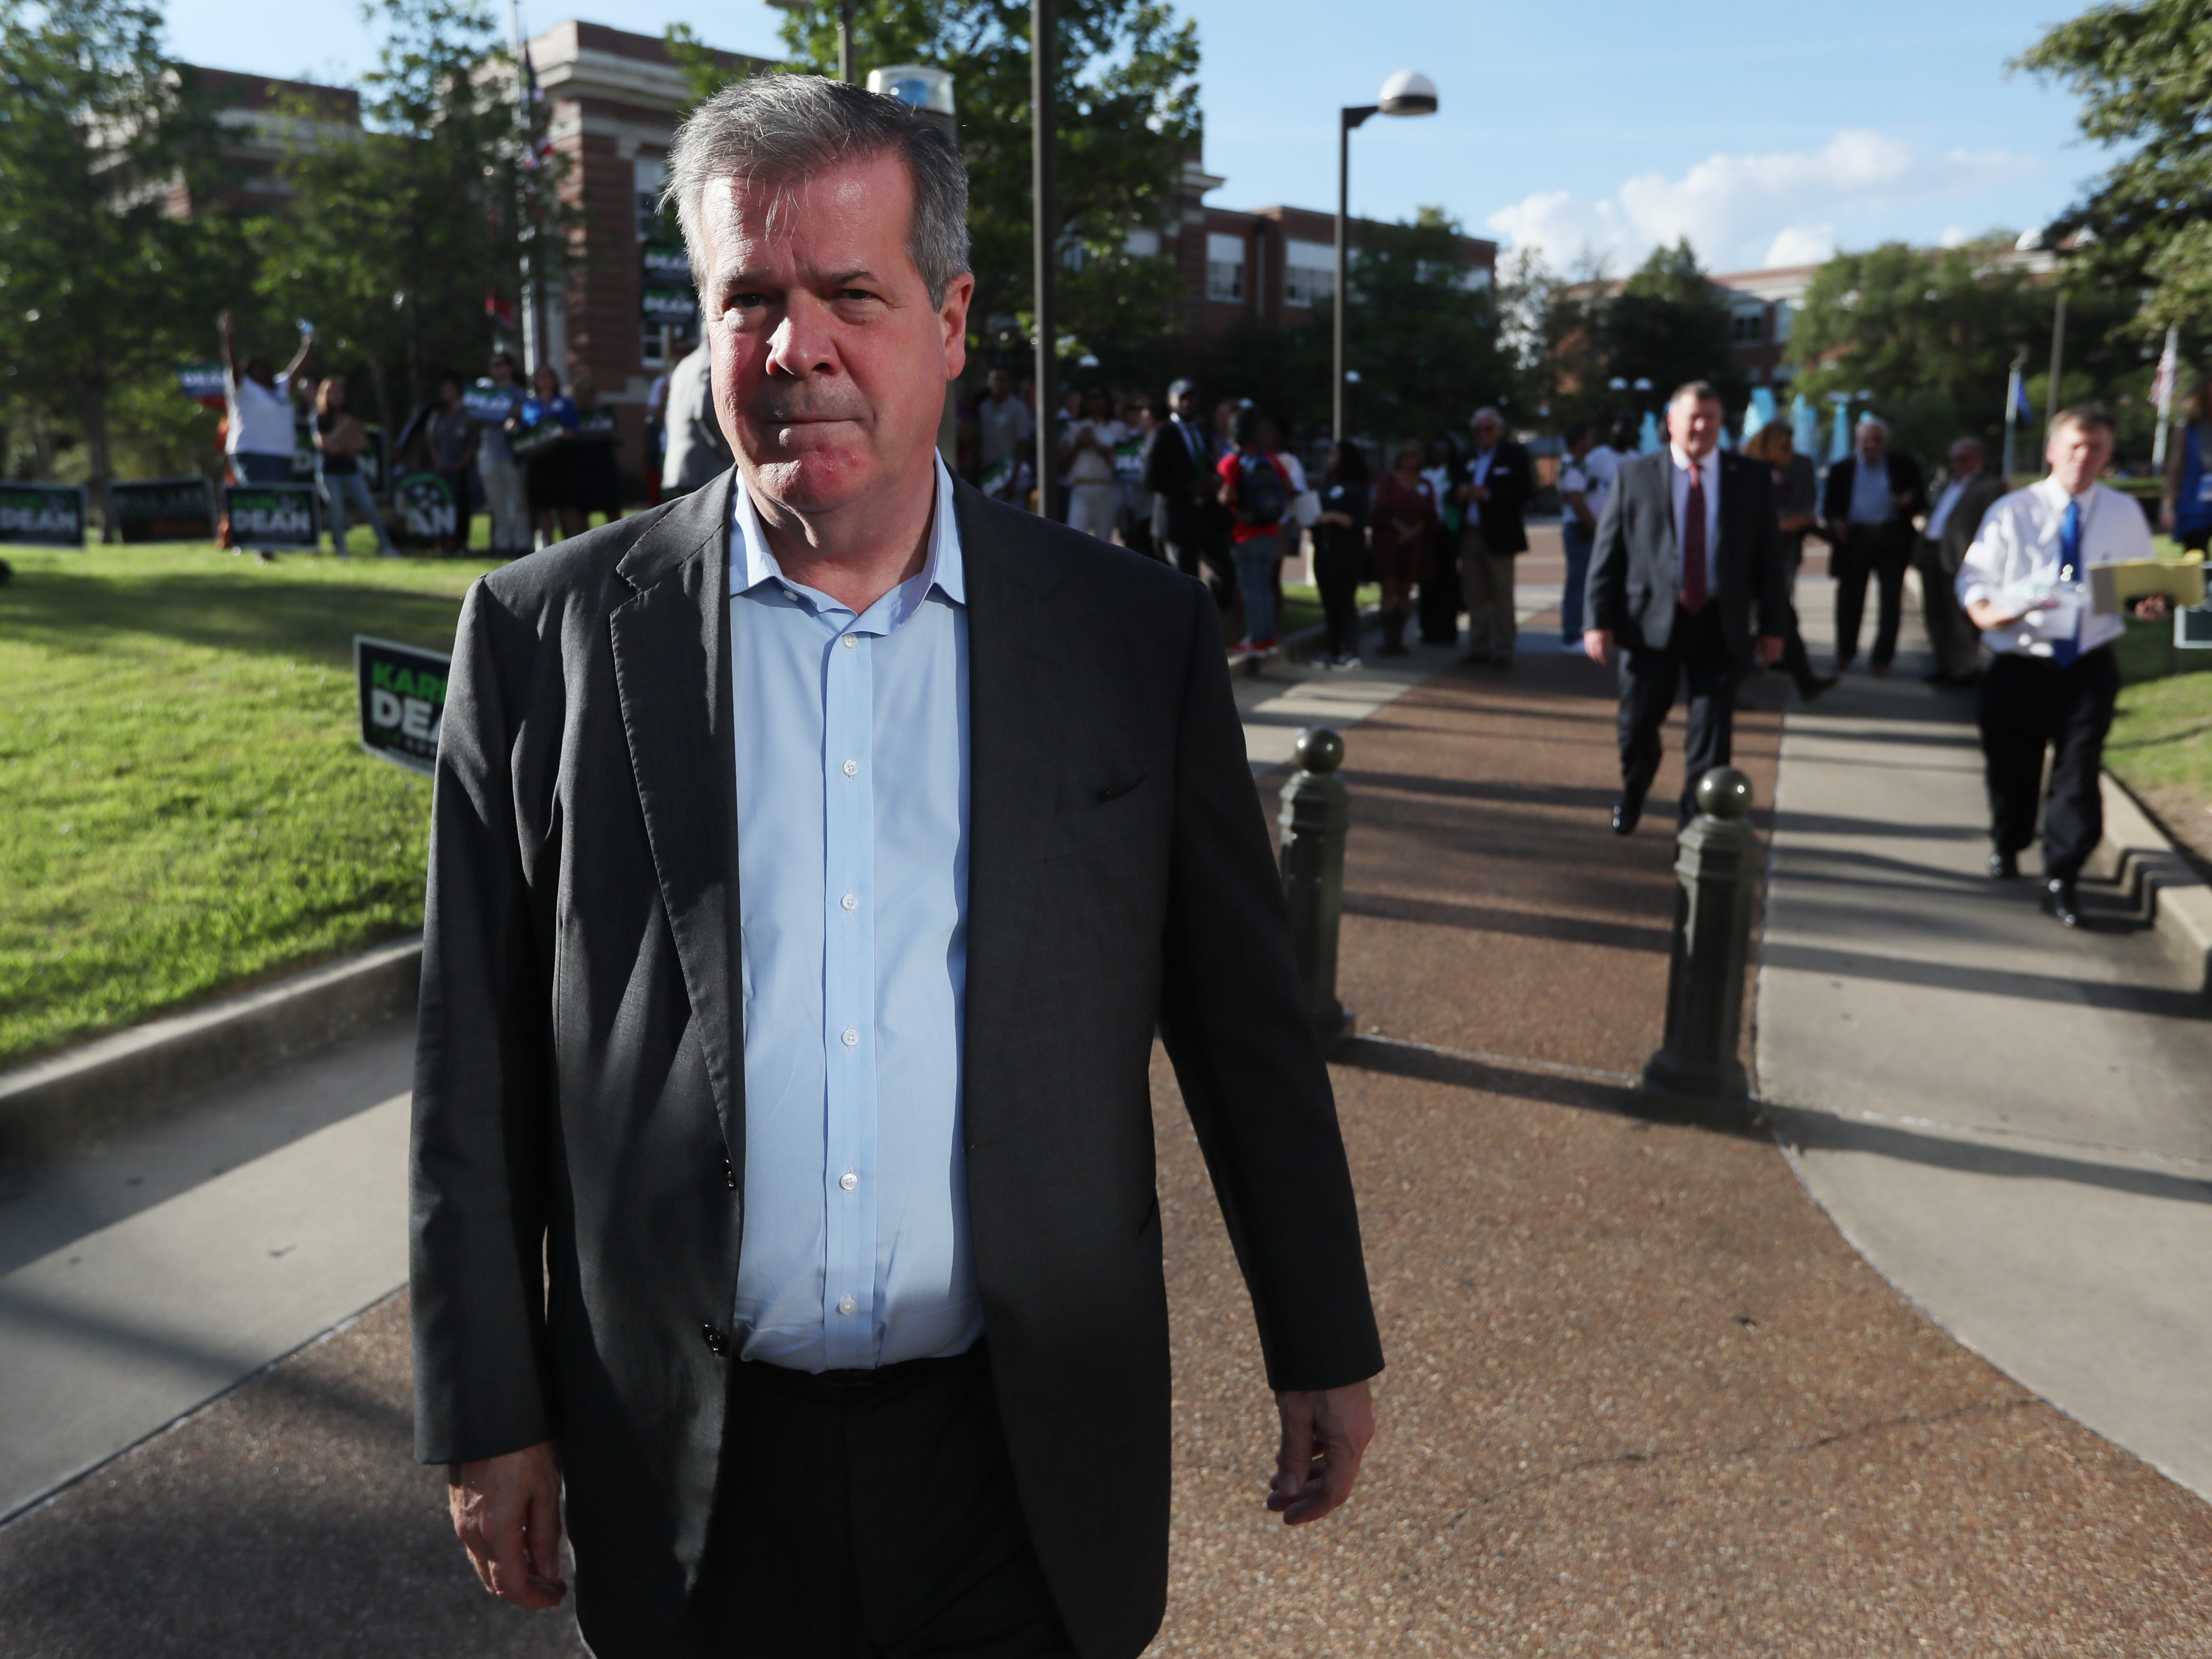 Democratic gubernatorial candidate Karl Dean arrives for the debate with Republican Bill Lee at the University of Memphis' Michael D. Rose Theater Lecture Hall in Memphis, Tenn., on Tuesday, Oct. 2, 2018.